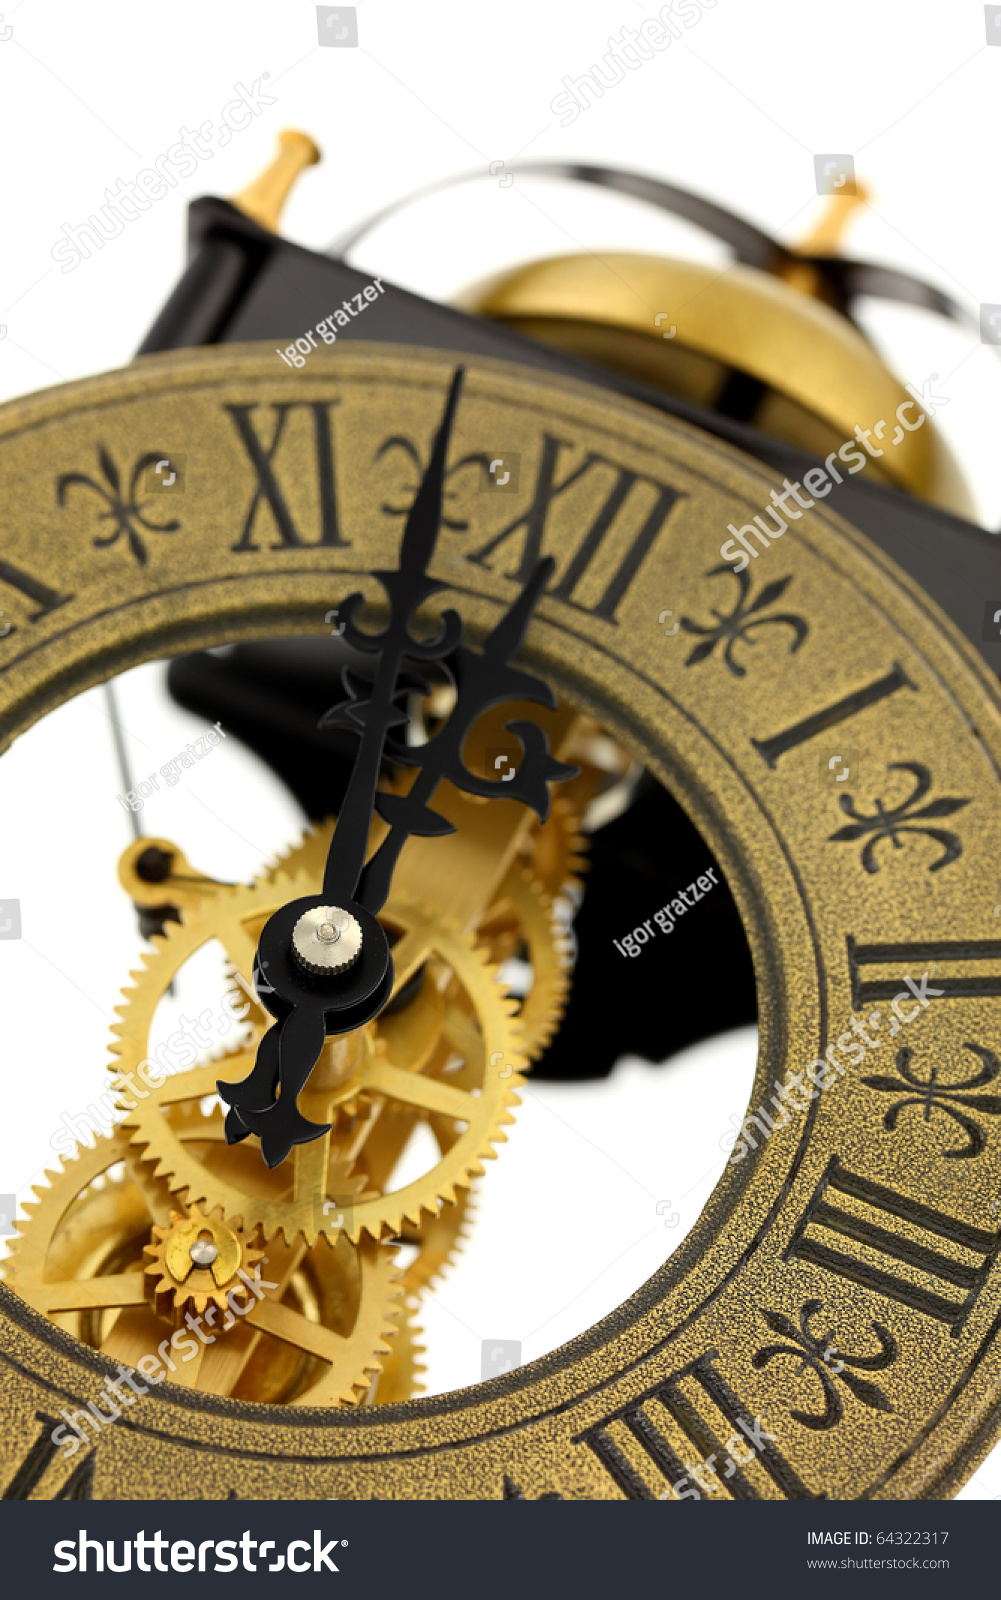 Close Up Of Old Fashioned Wall Clock With Visible Gears